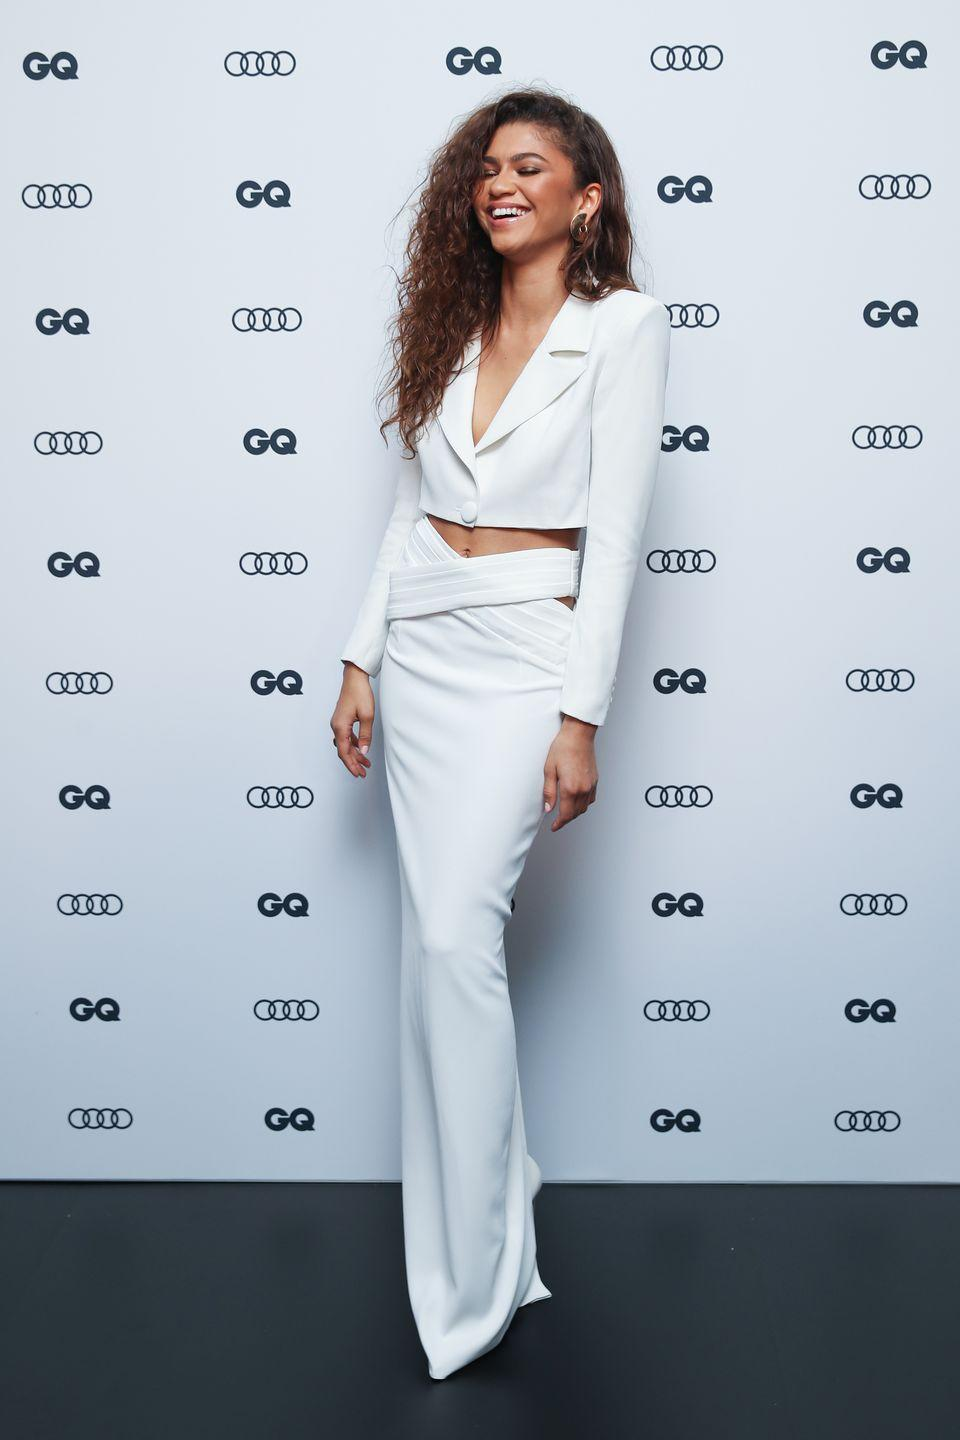 <p>At <em>GQ</em>'s 2019 Man of the Year Awards, she stepped out in *the* outfit of the night (if we do say so ourselves). This white jacket and skirt combo by Mônot paired with her gorge curls created the perfect red carpet look.</p>